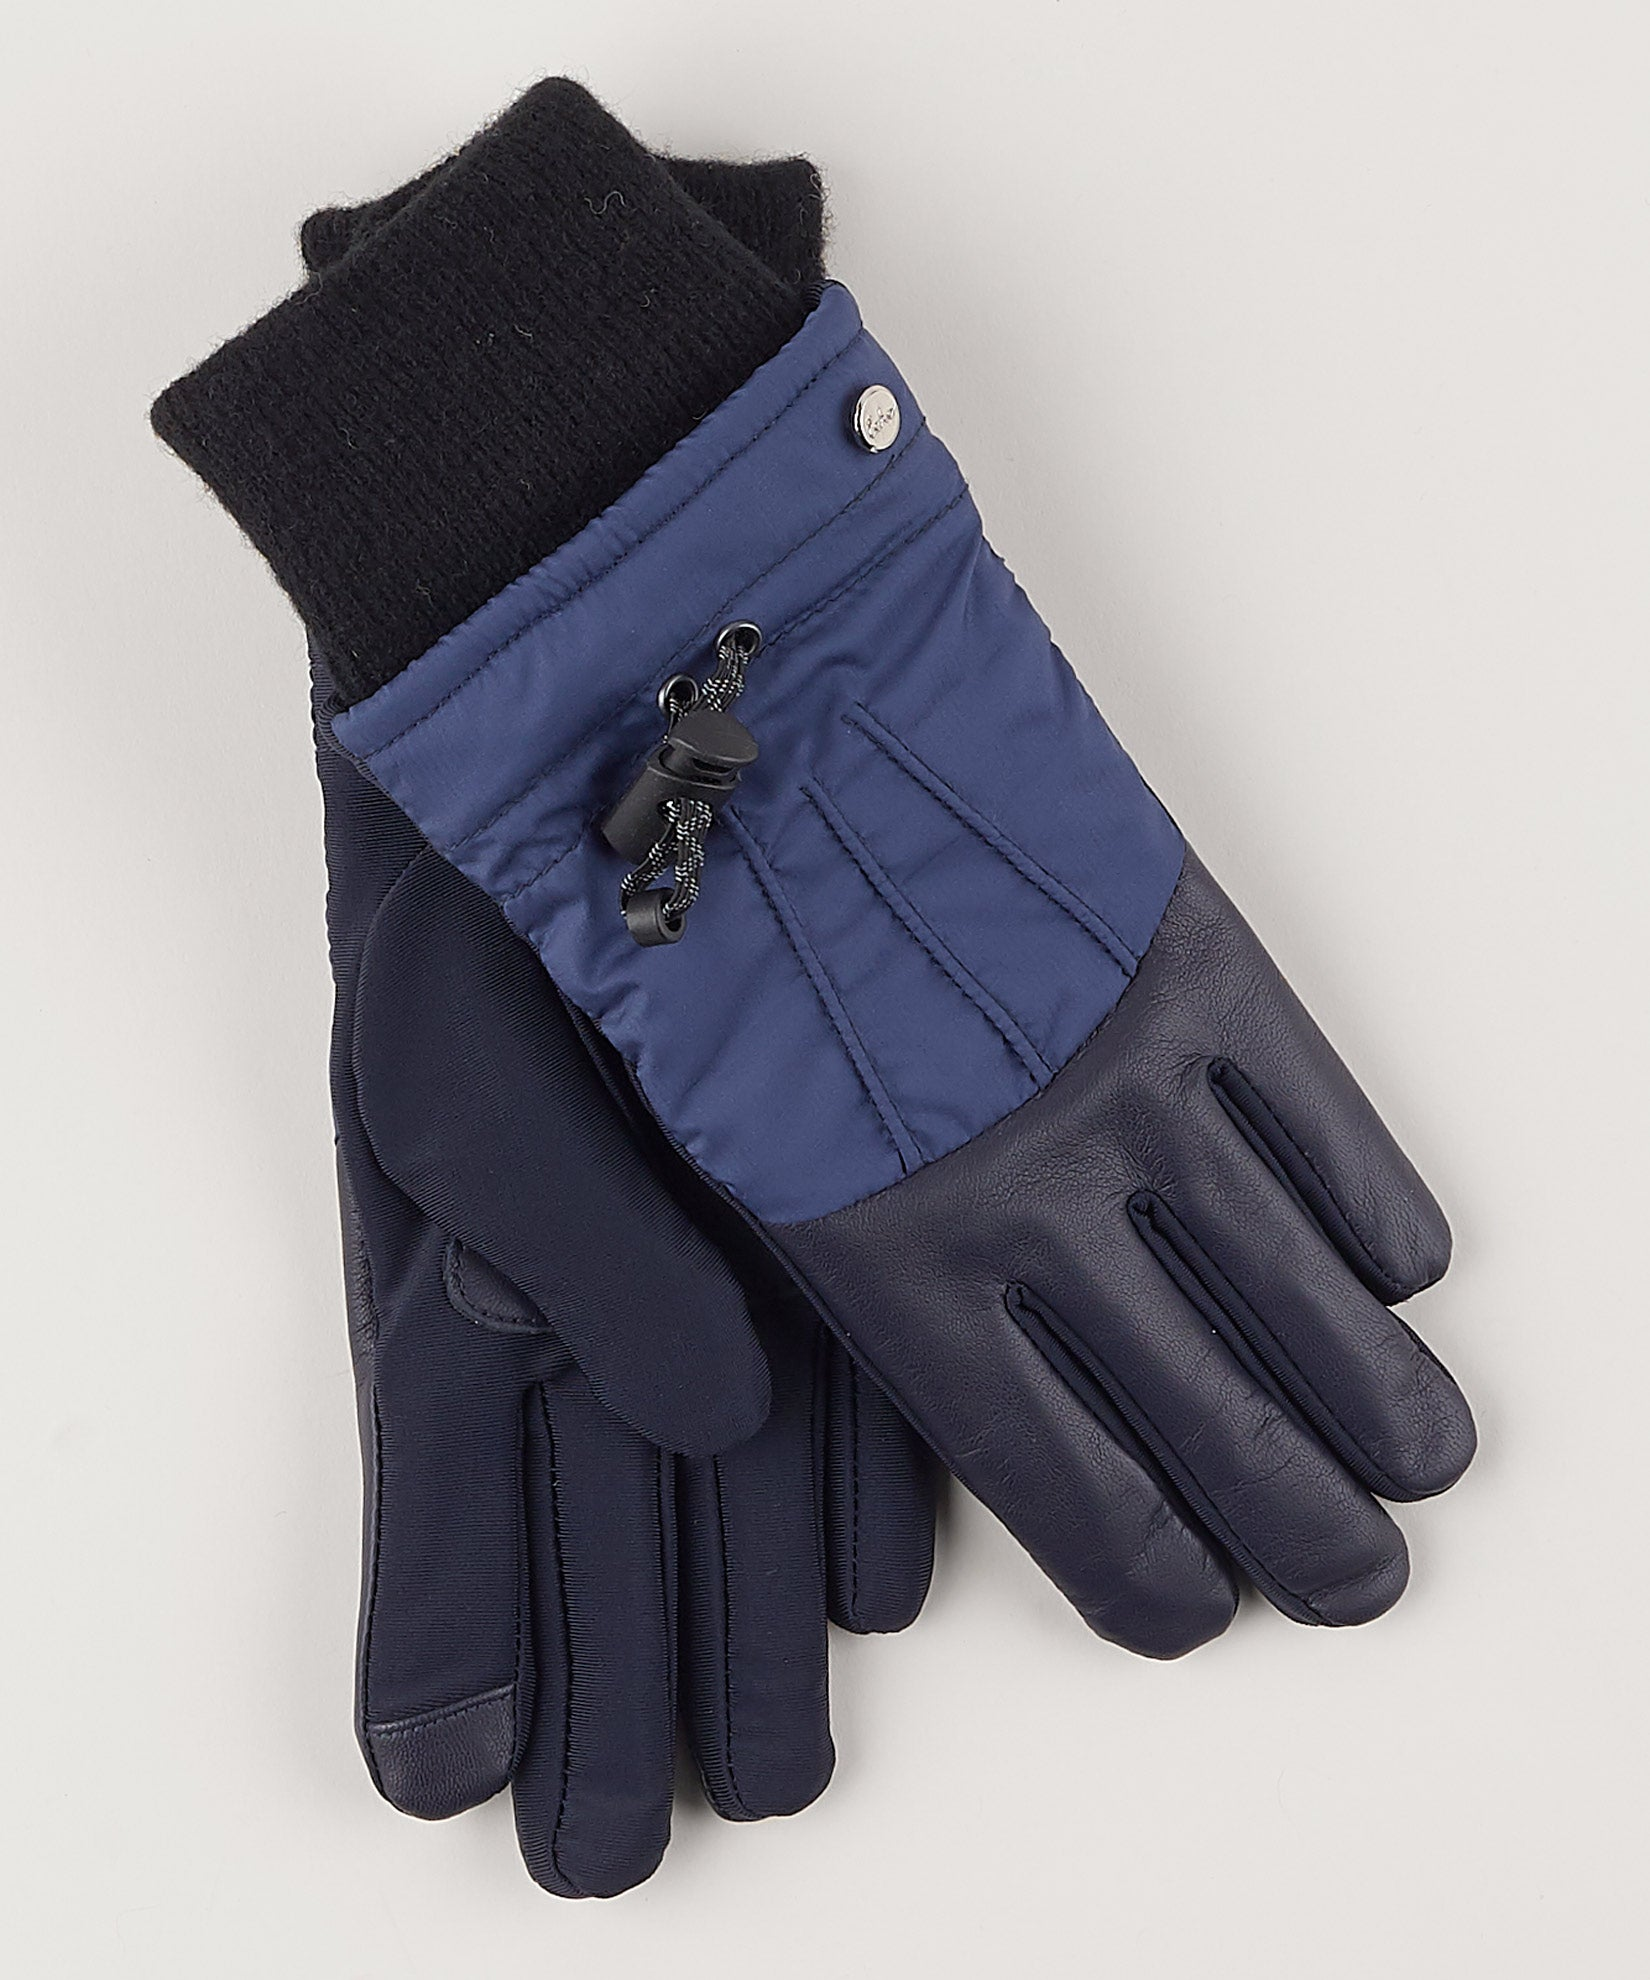 Navy - Warmest Superfit Drawstring Glove